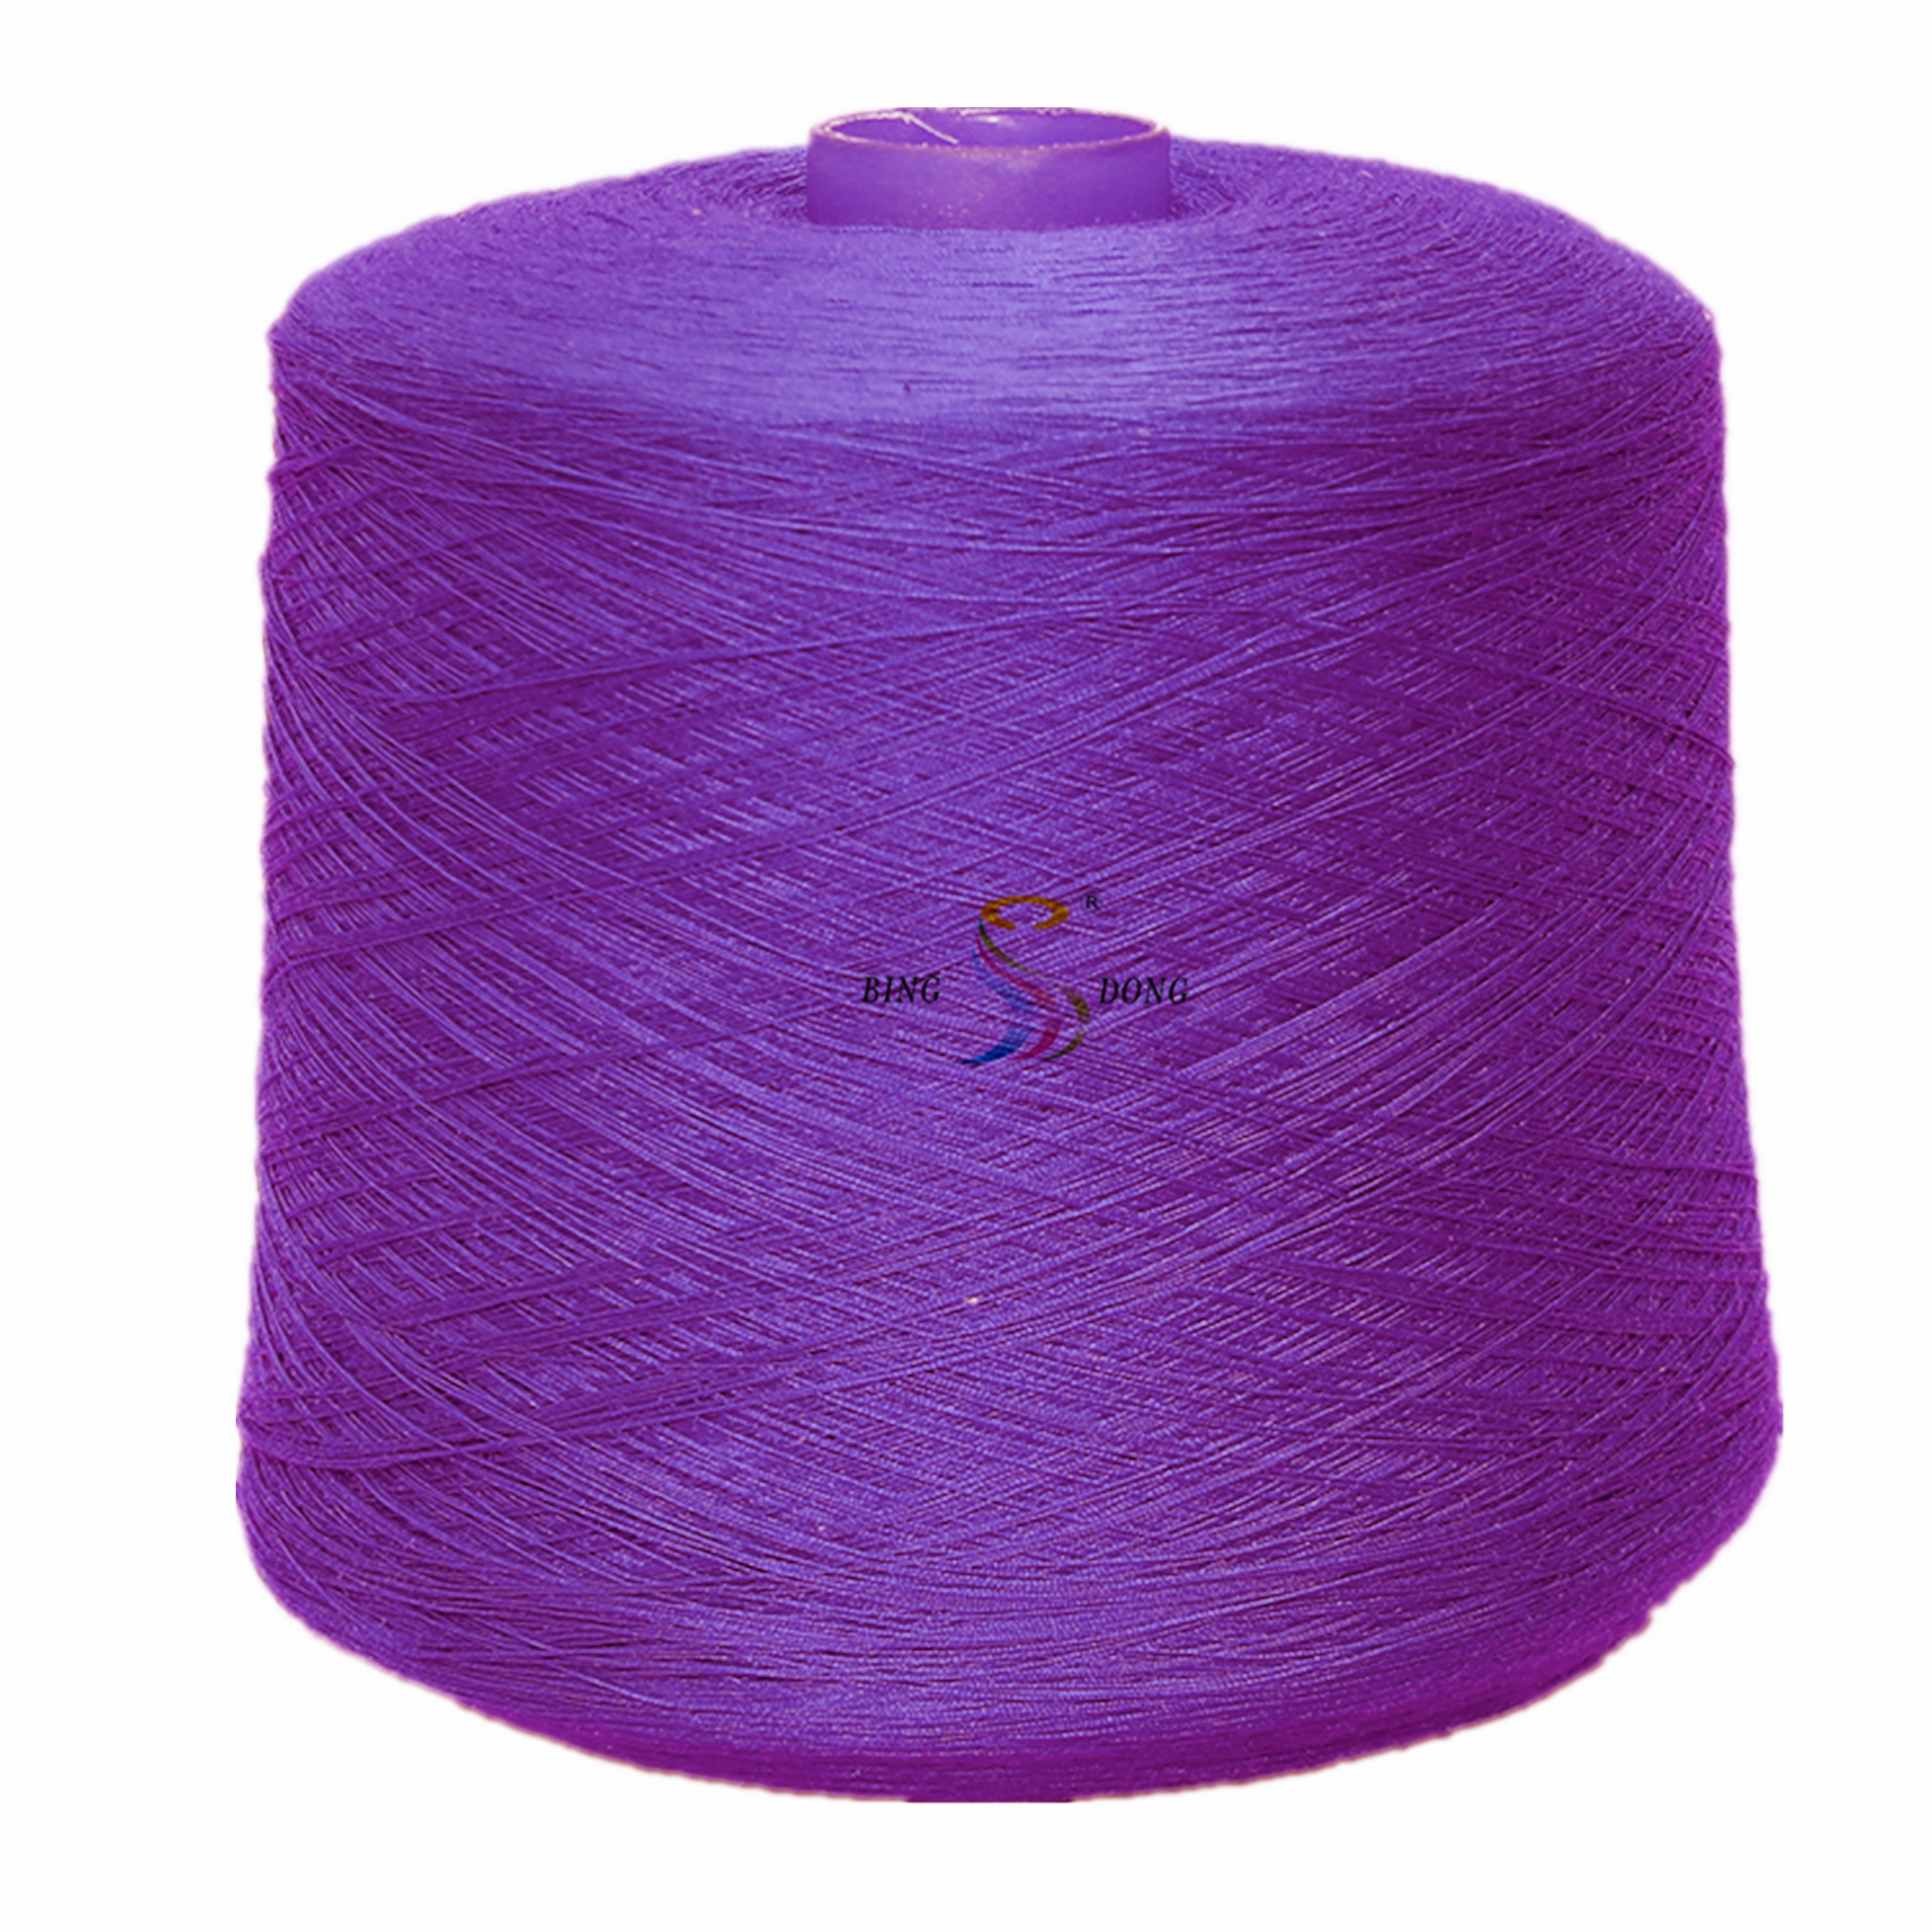 eco-friendly water dyed 100% polyester spun yarn in many colors 20/2